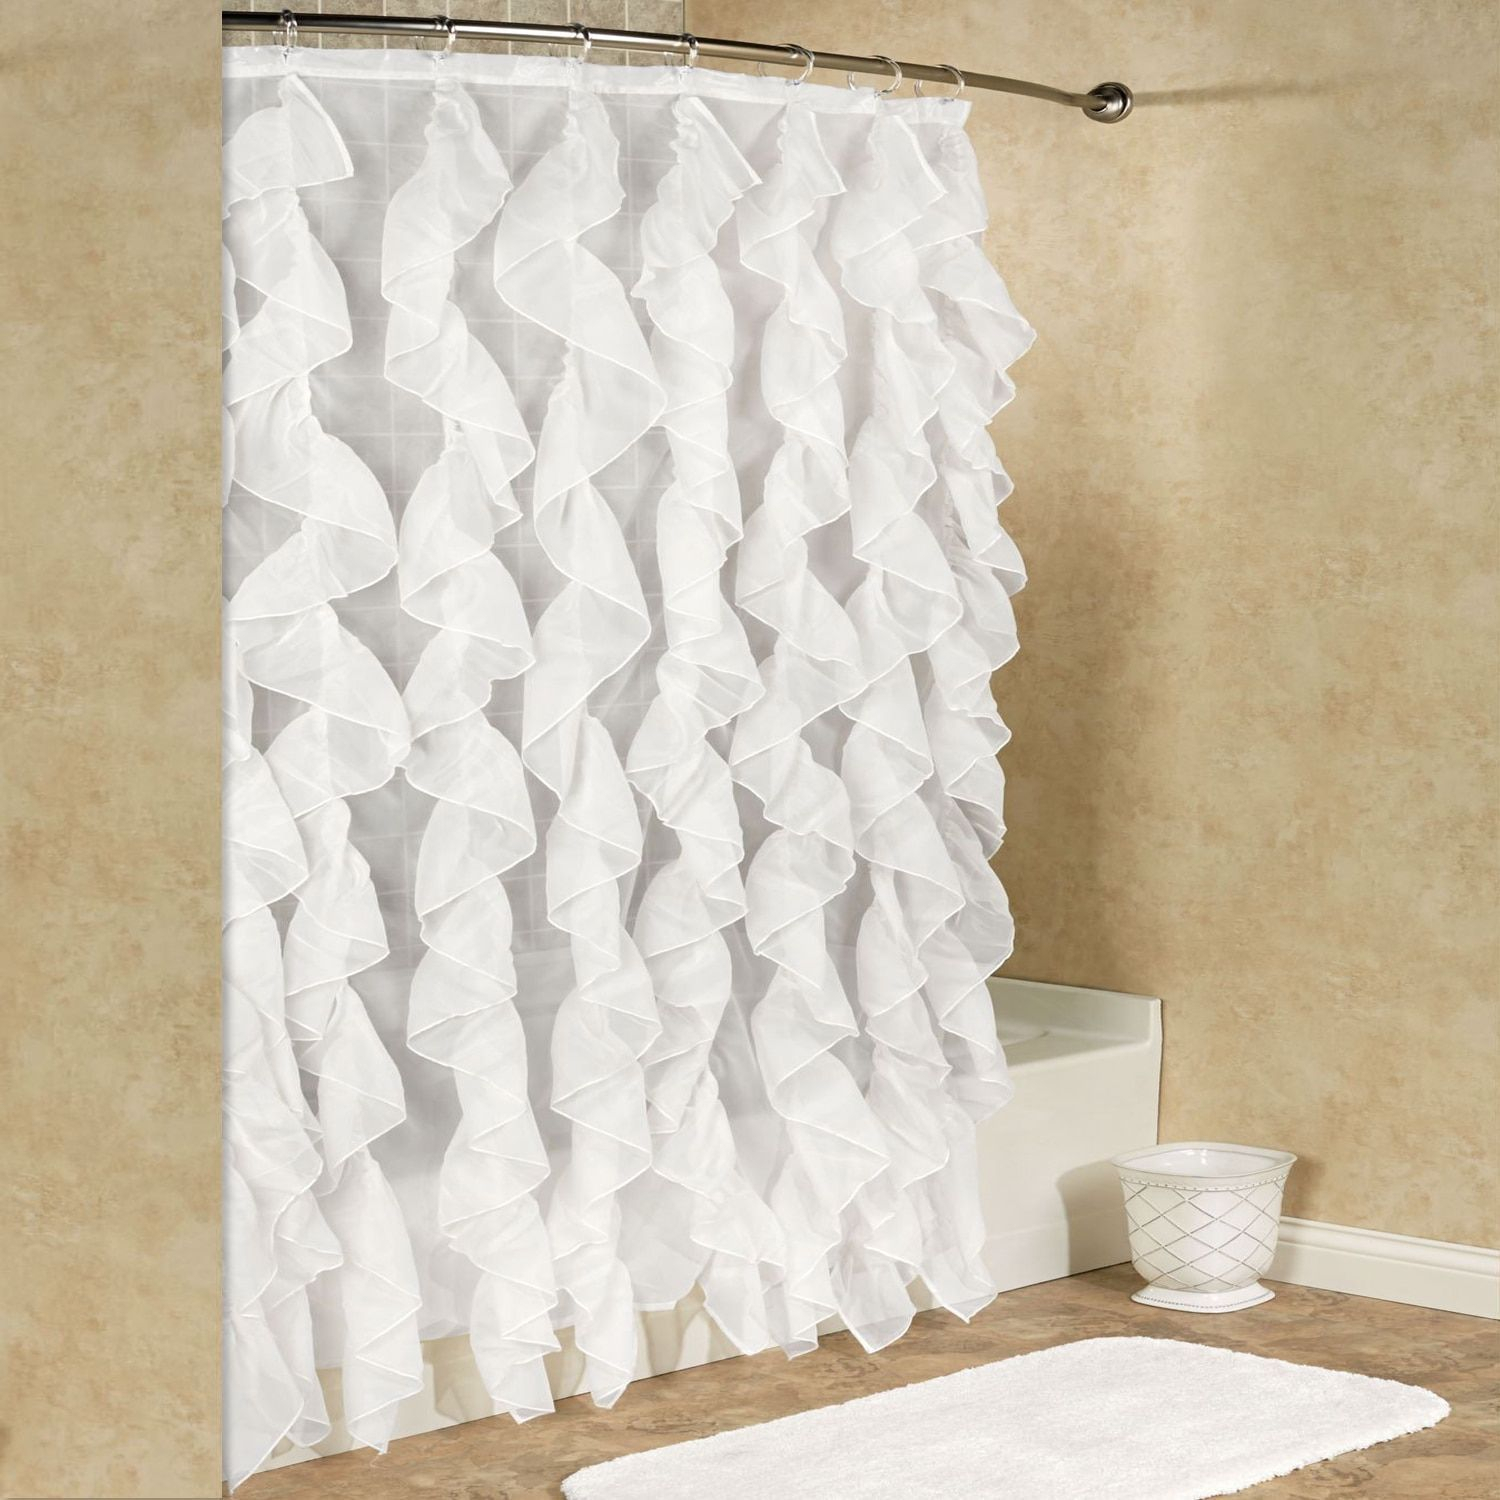 Chic Sheer Voile Vertical Waterfall Ruffled Shower Curtain Intended For Silver Vertical Ruffled Waterfall Valance And Curtain Tiers (View 16 of 20)